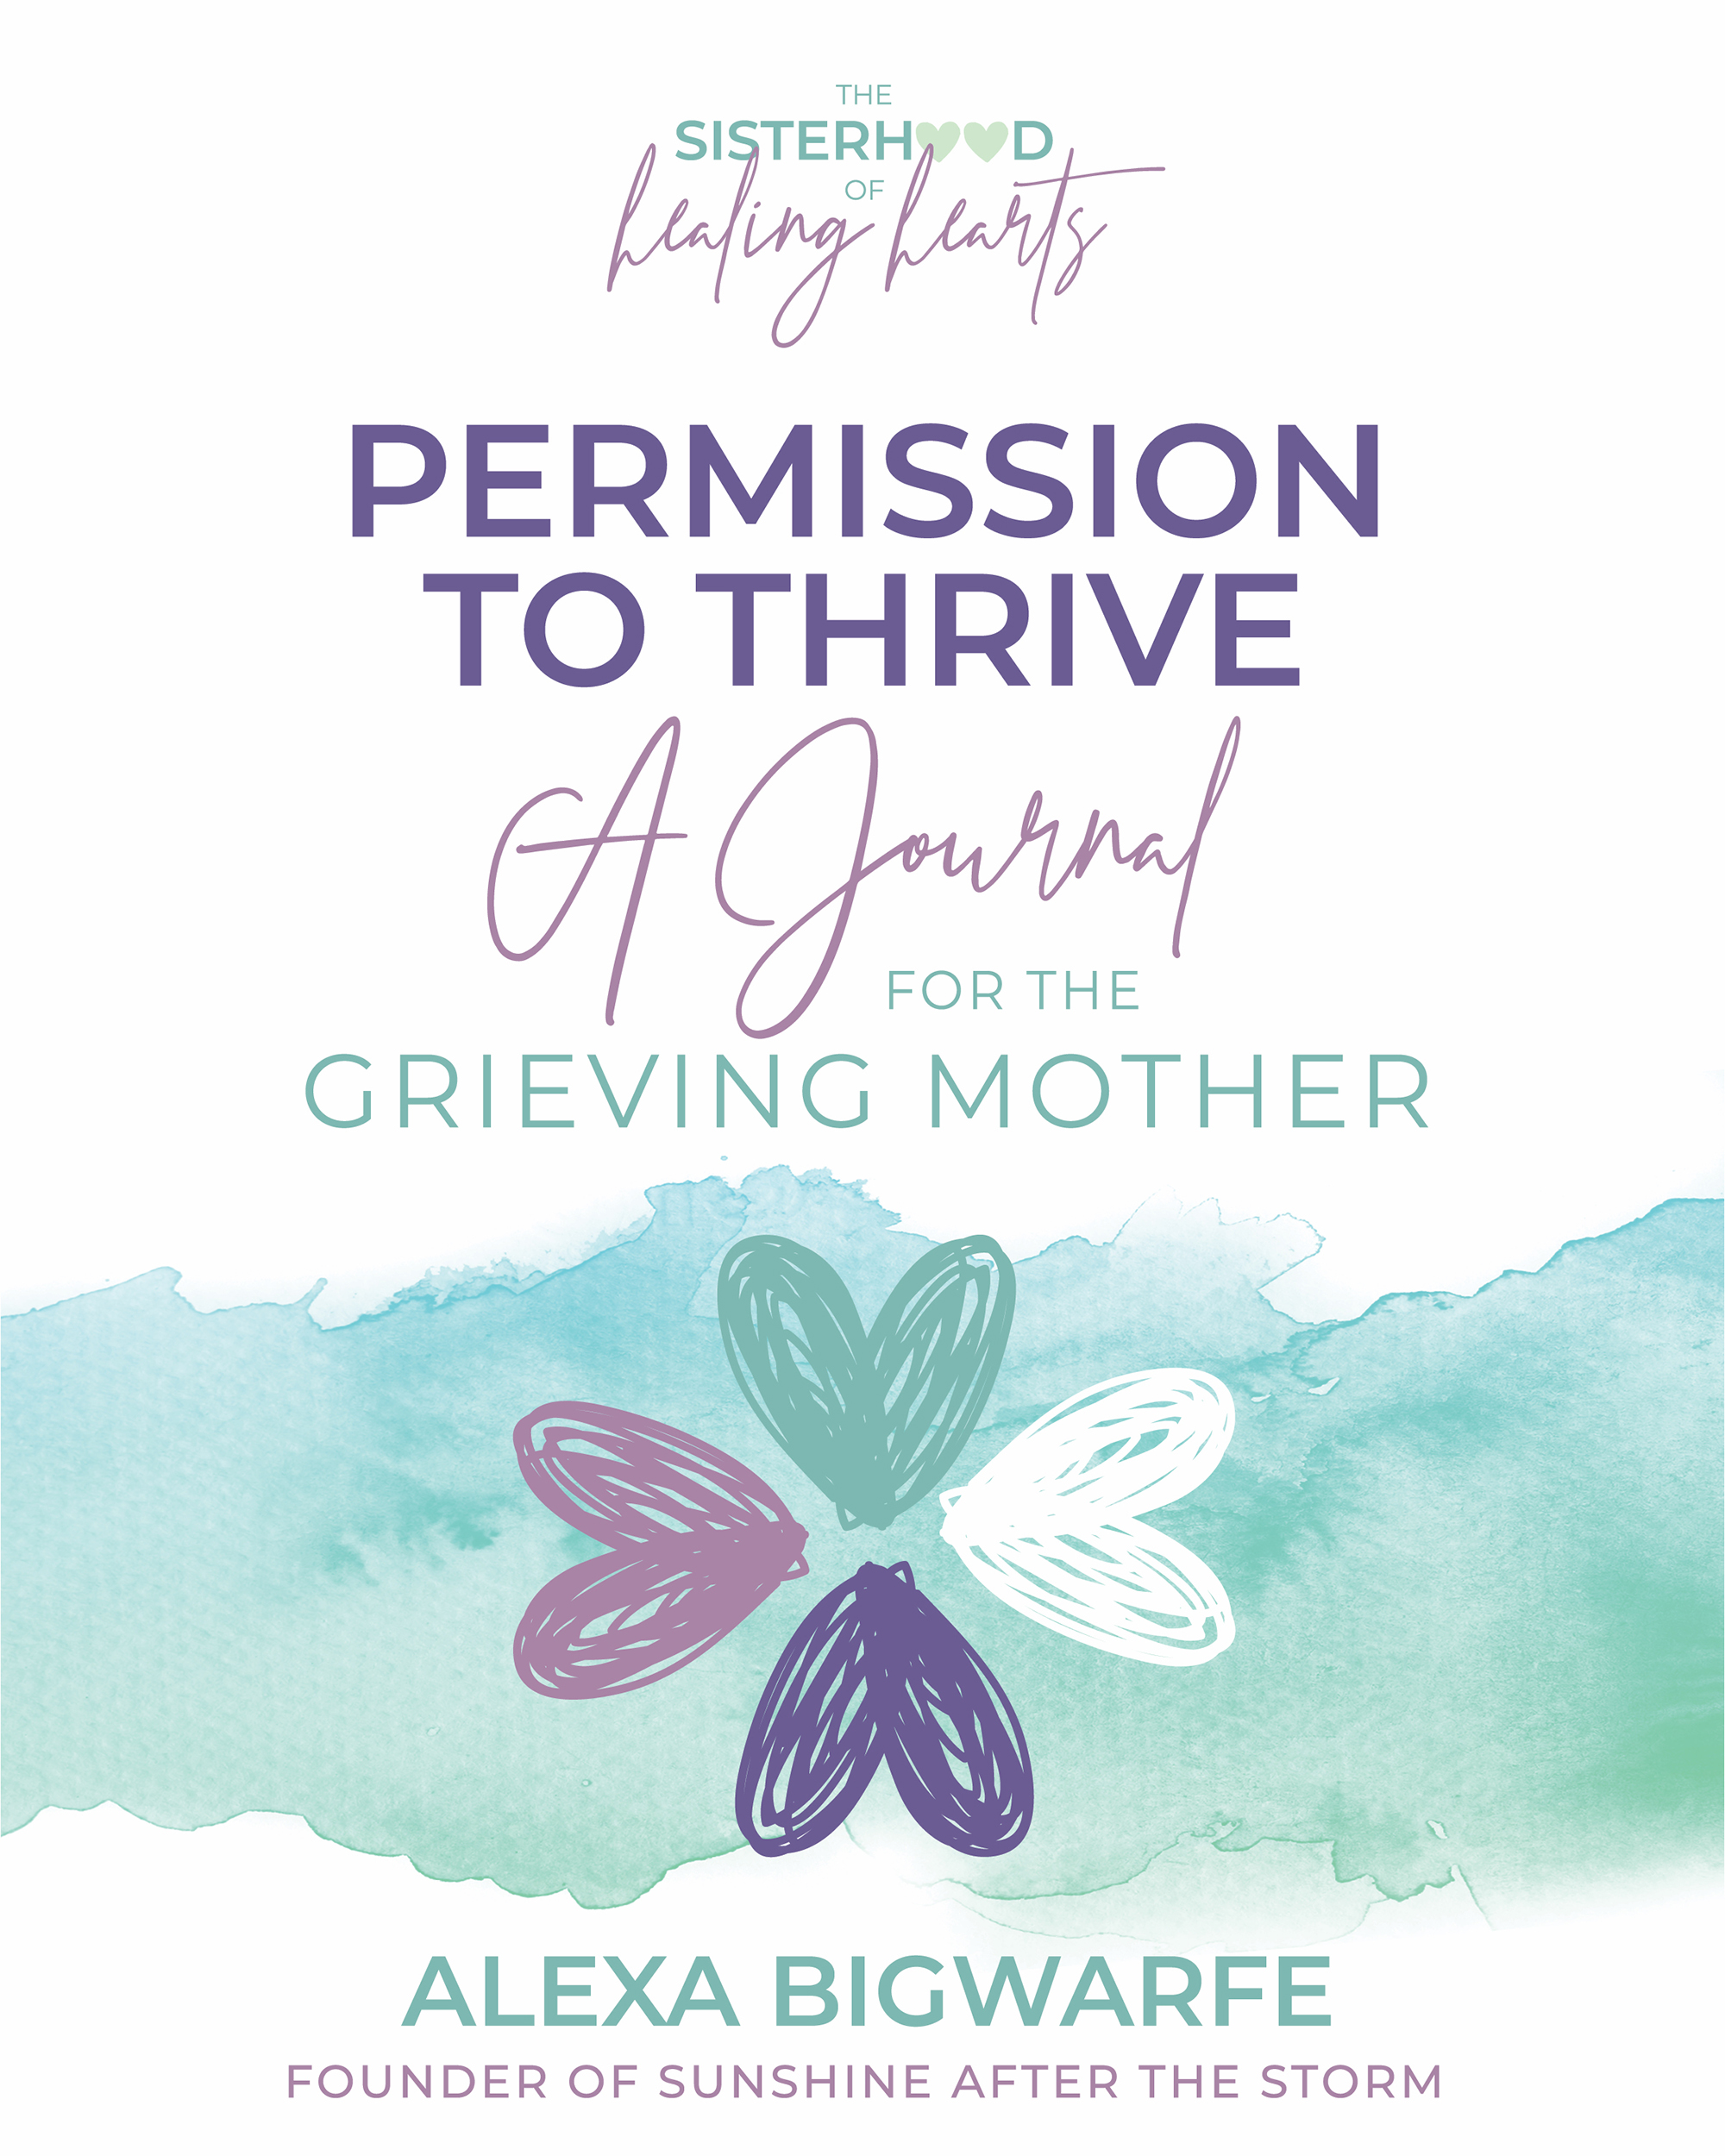 New Journal for Grieving Mothers